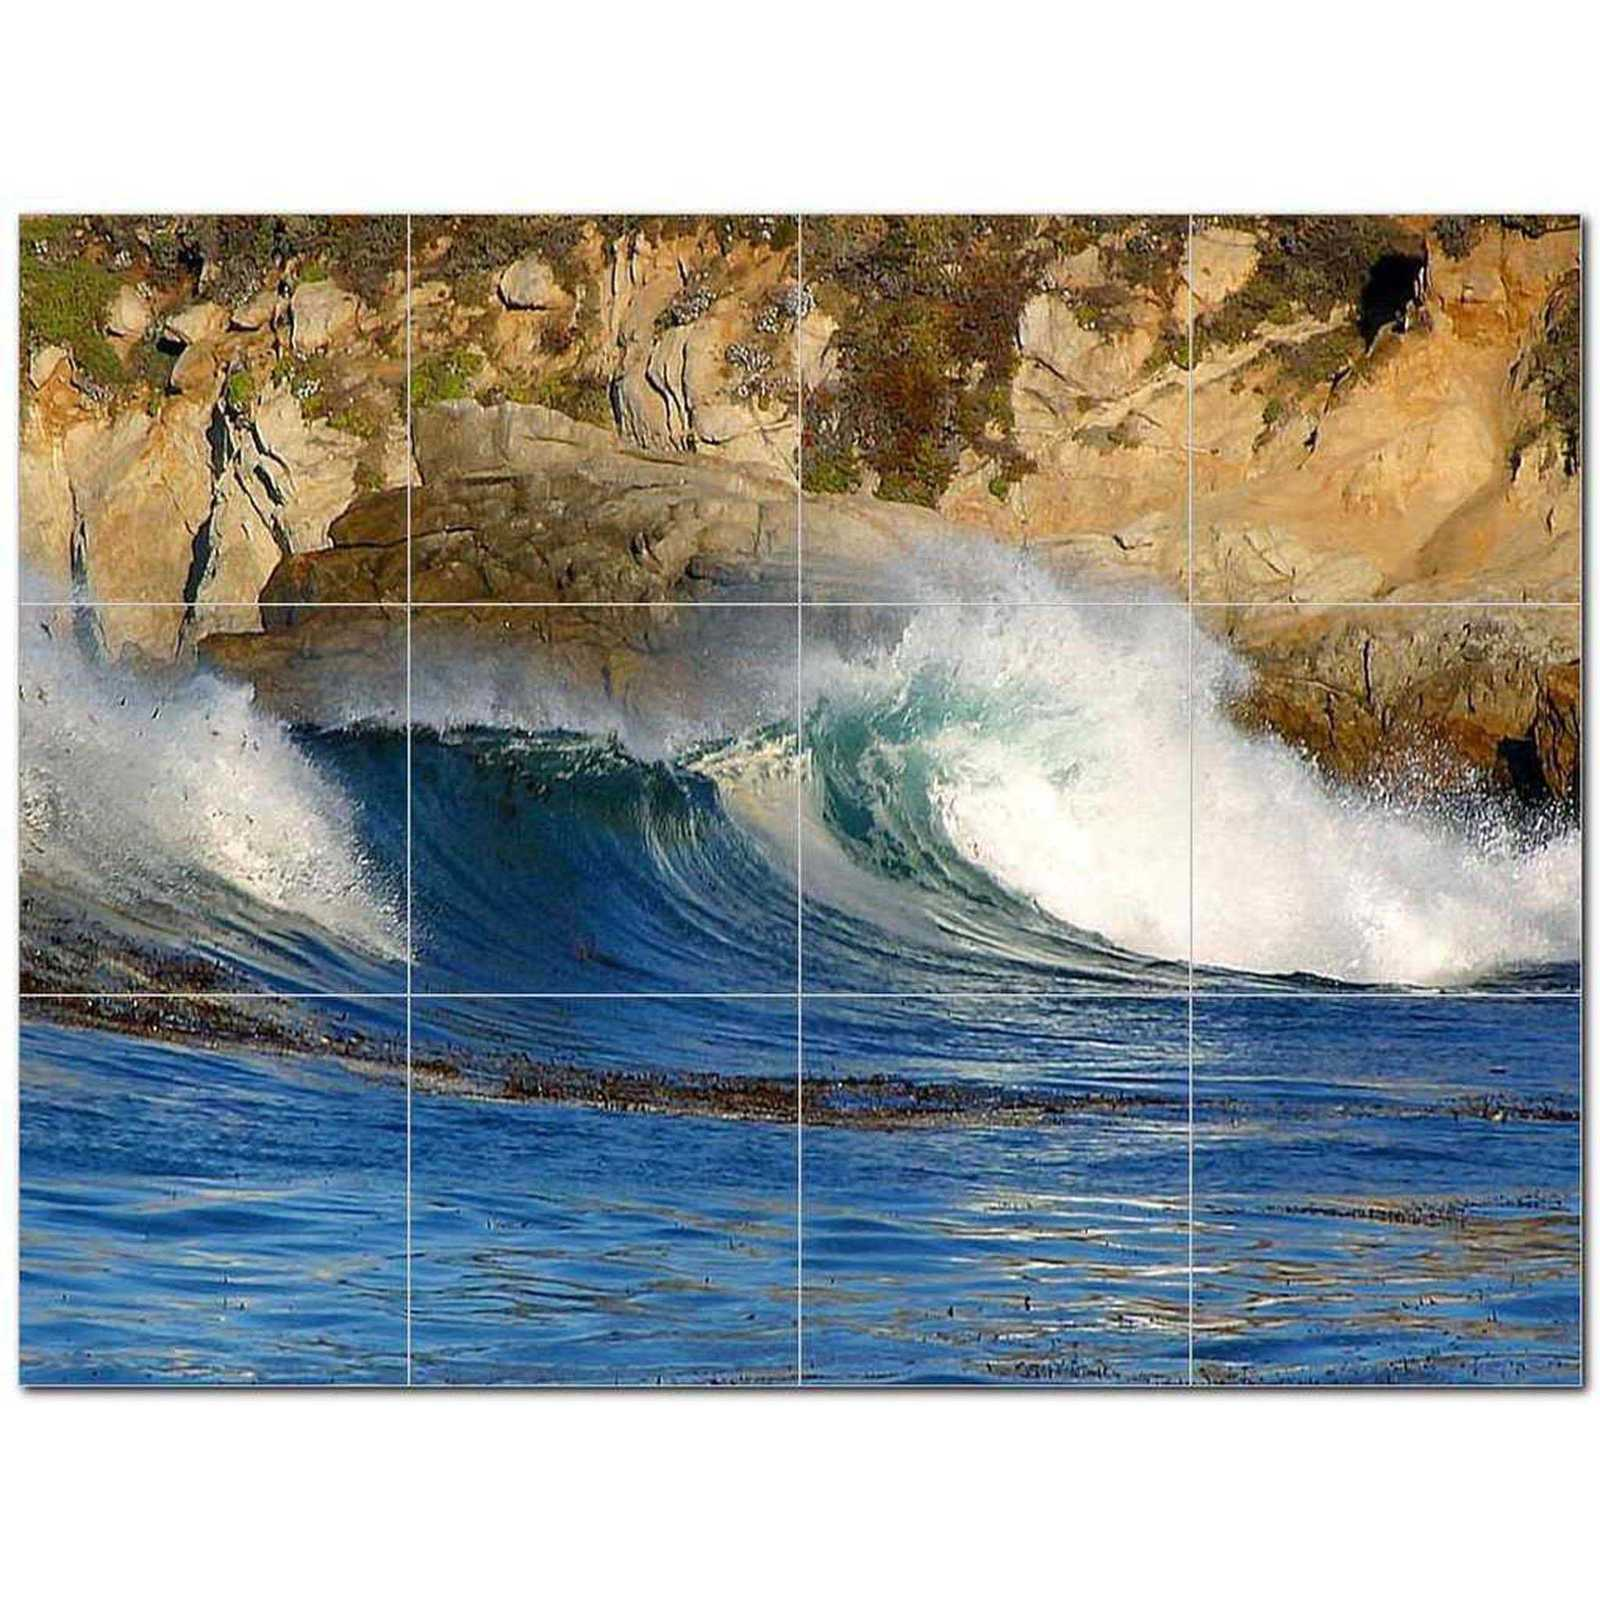 Primary image for Wave Photo Ceramic Tile Mural Kitchen Backsplash Bathroom Shower BAZ406297